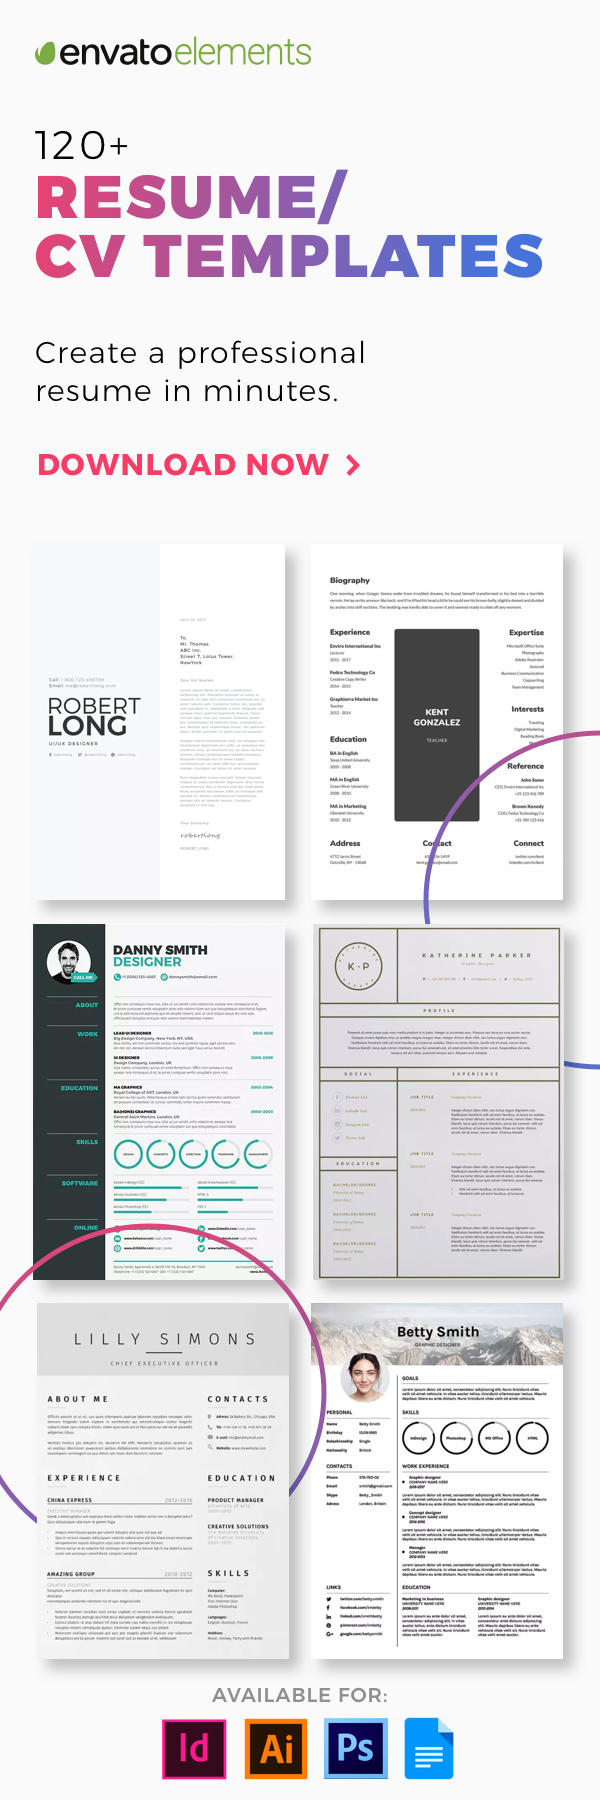 2018 Resume Templates Unlimited Downloads Of 2018's Best Resume Templates  Resume